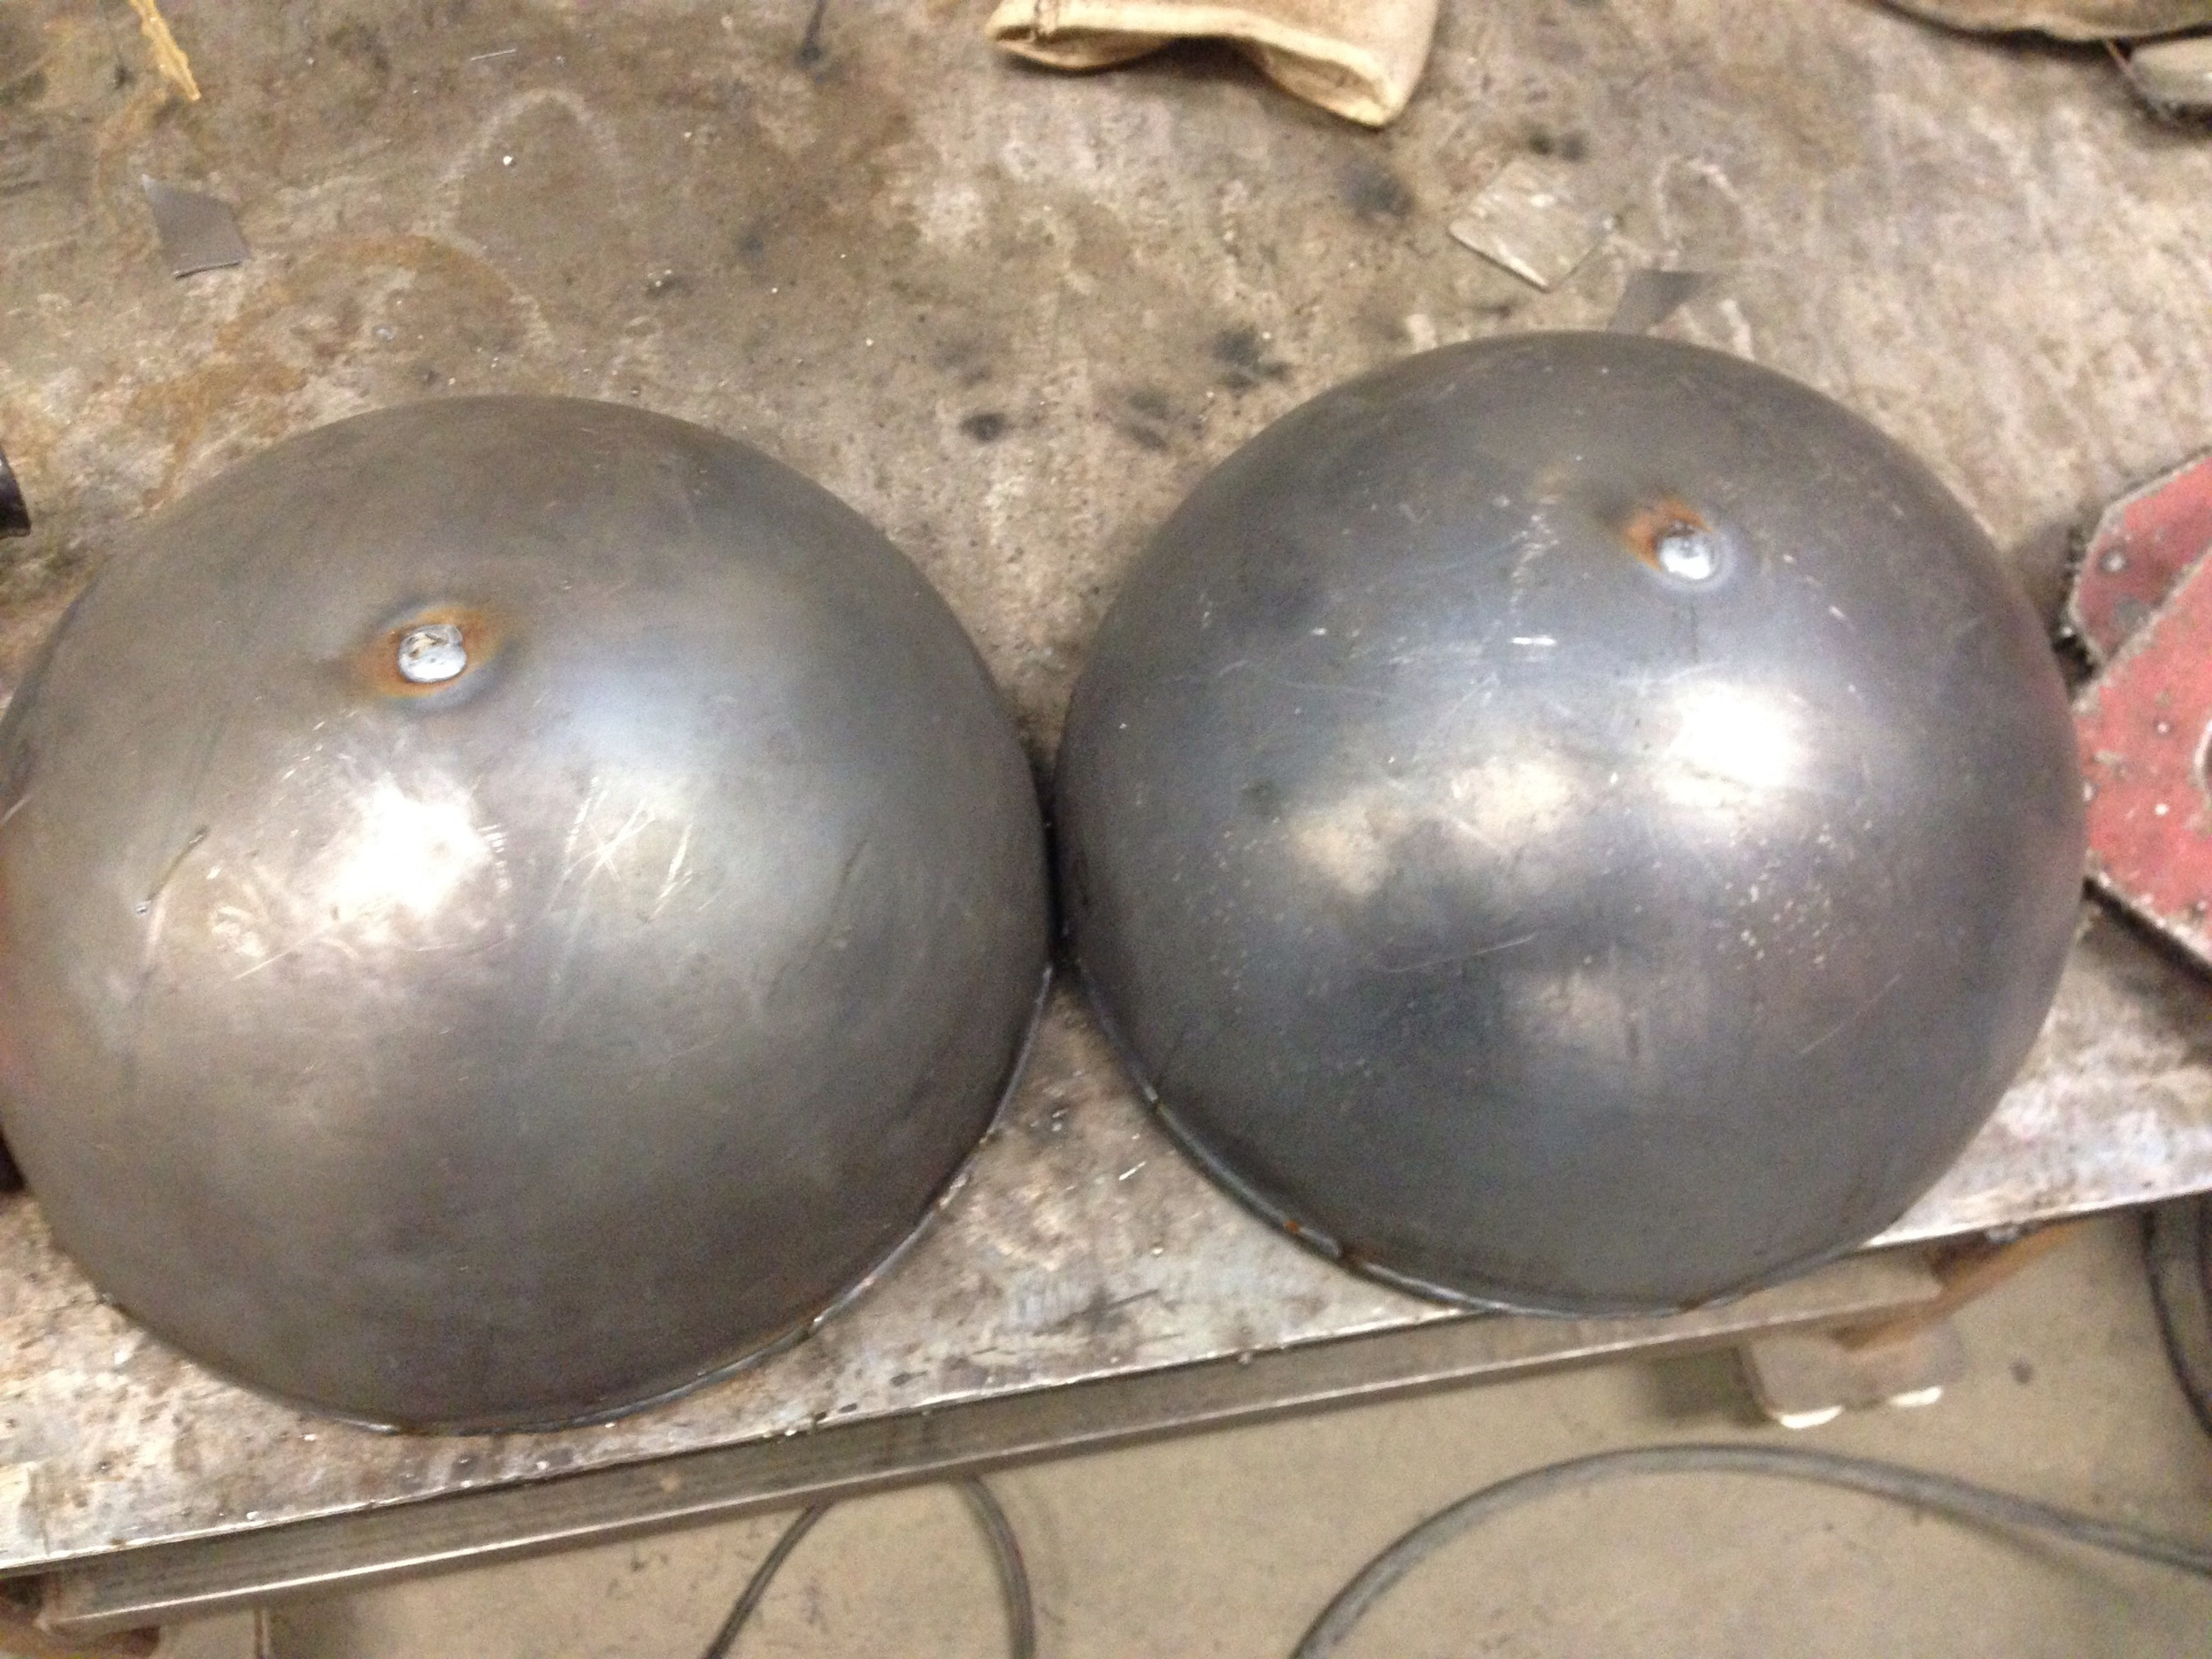 Yeah yeah, my wife already told me they look like boobs. I had to weld up the holes in hemispheres so water doesn't get into them.